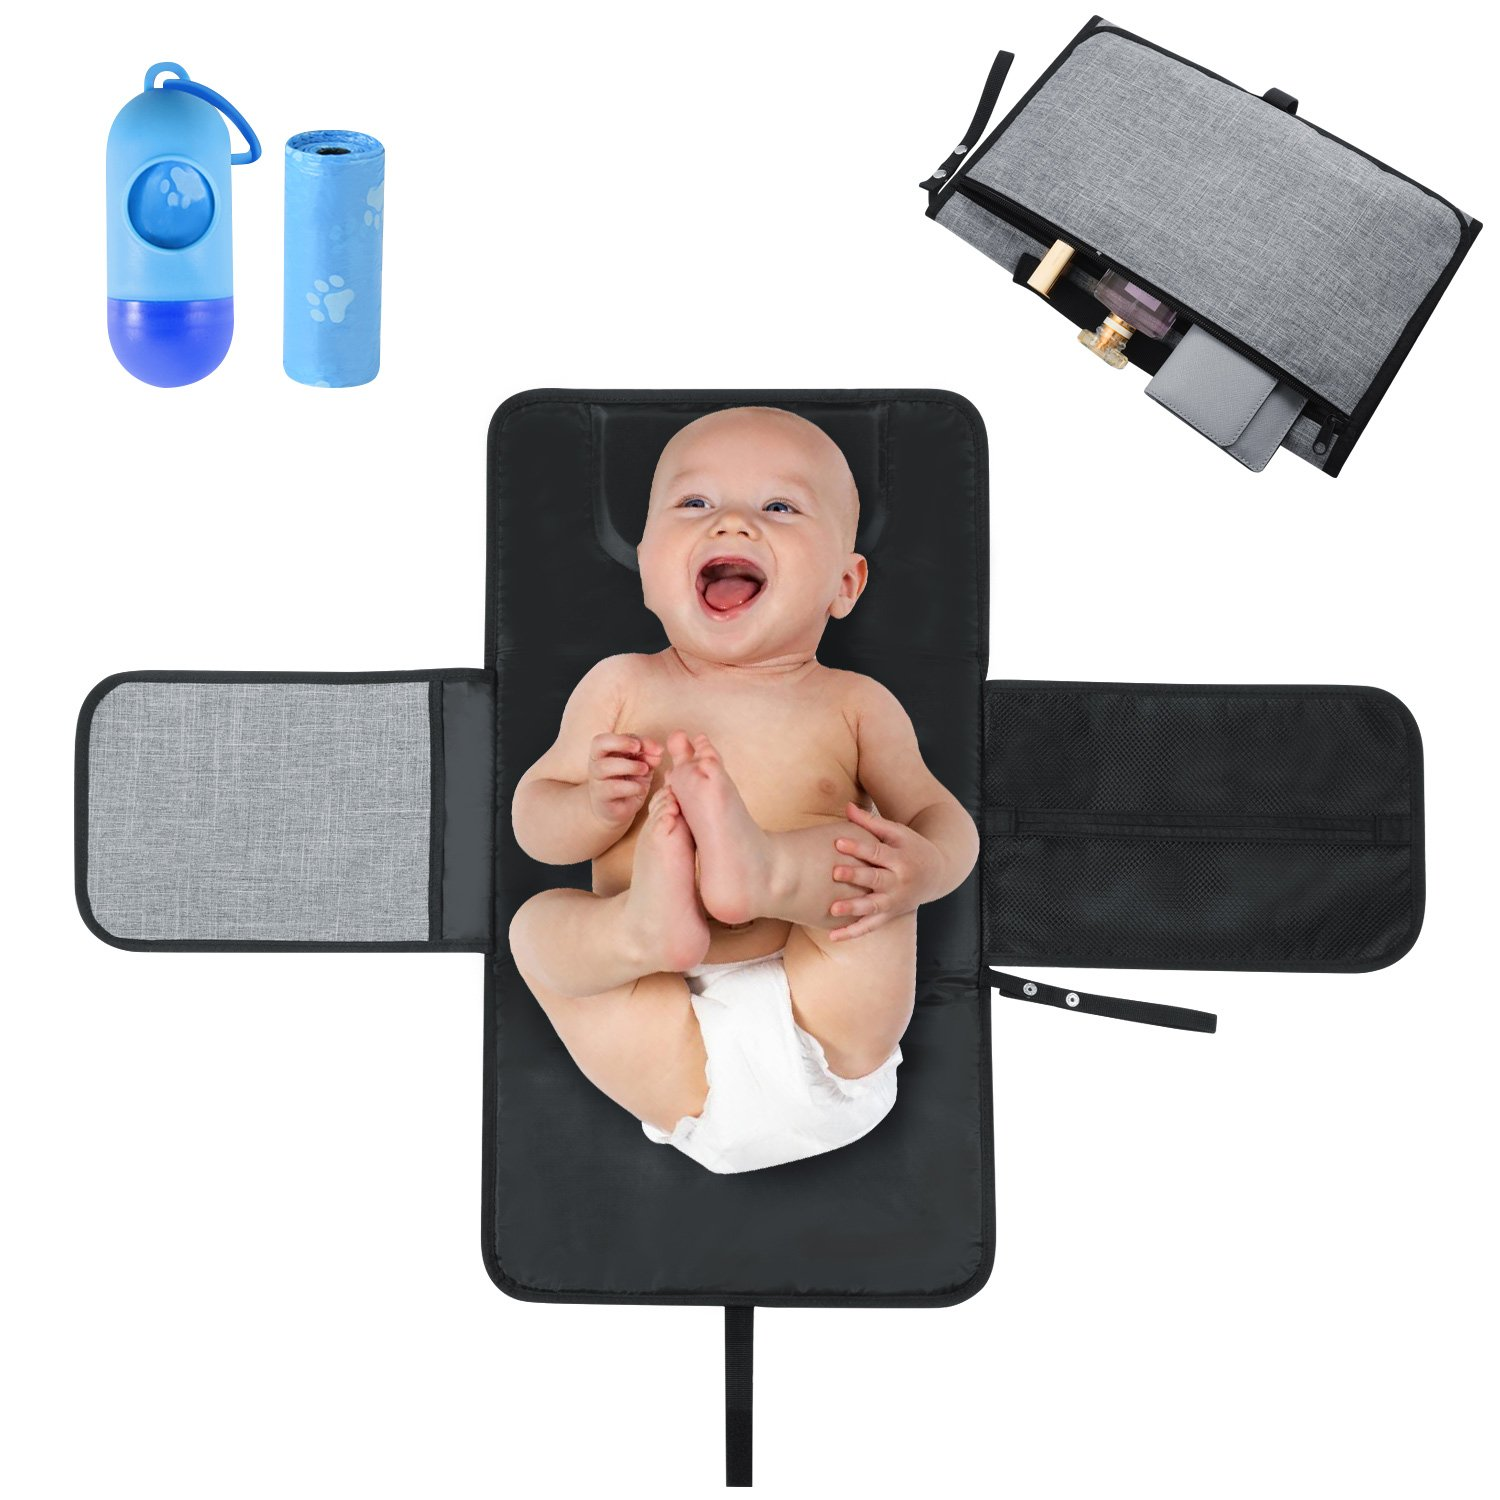 Portable Nappy Changing Mat, Zonlicat Waterproof Diaper Changing Pad with Head Cushion Pockets, Foldable Travel Baby Hand Bag Size Changing Mat Kit Include 15 Disposable Bags